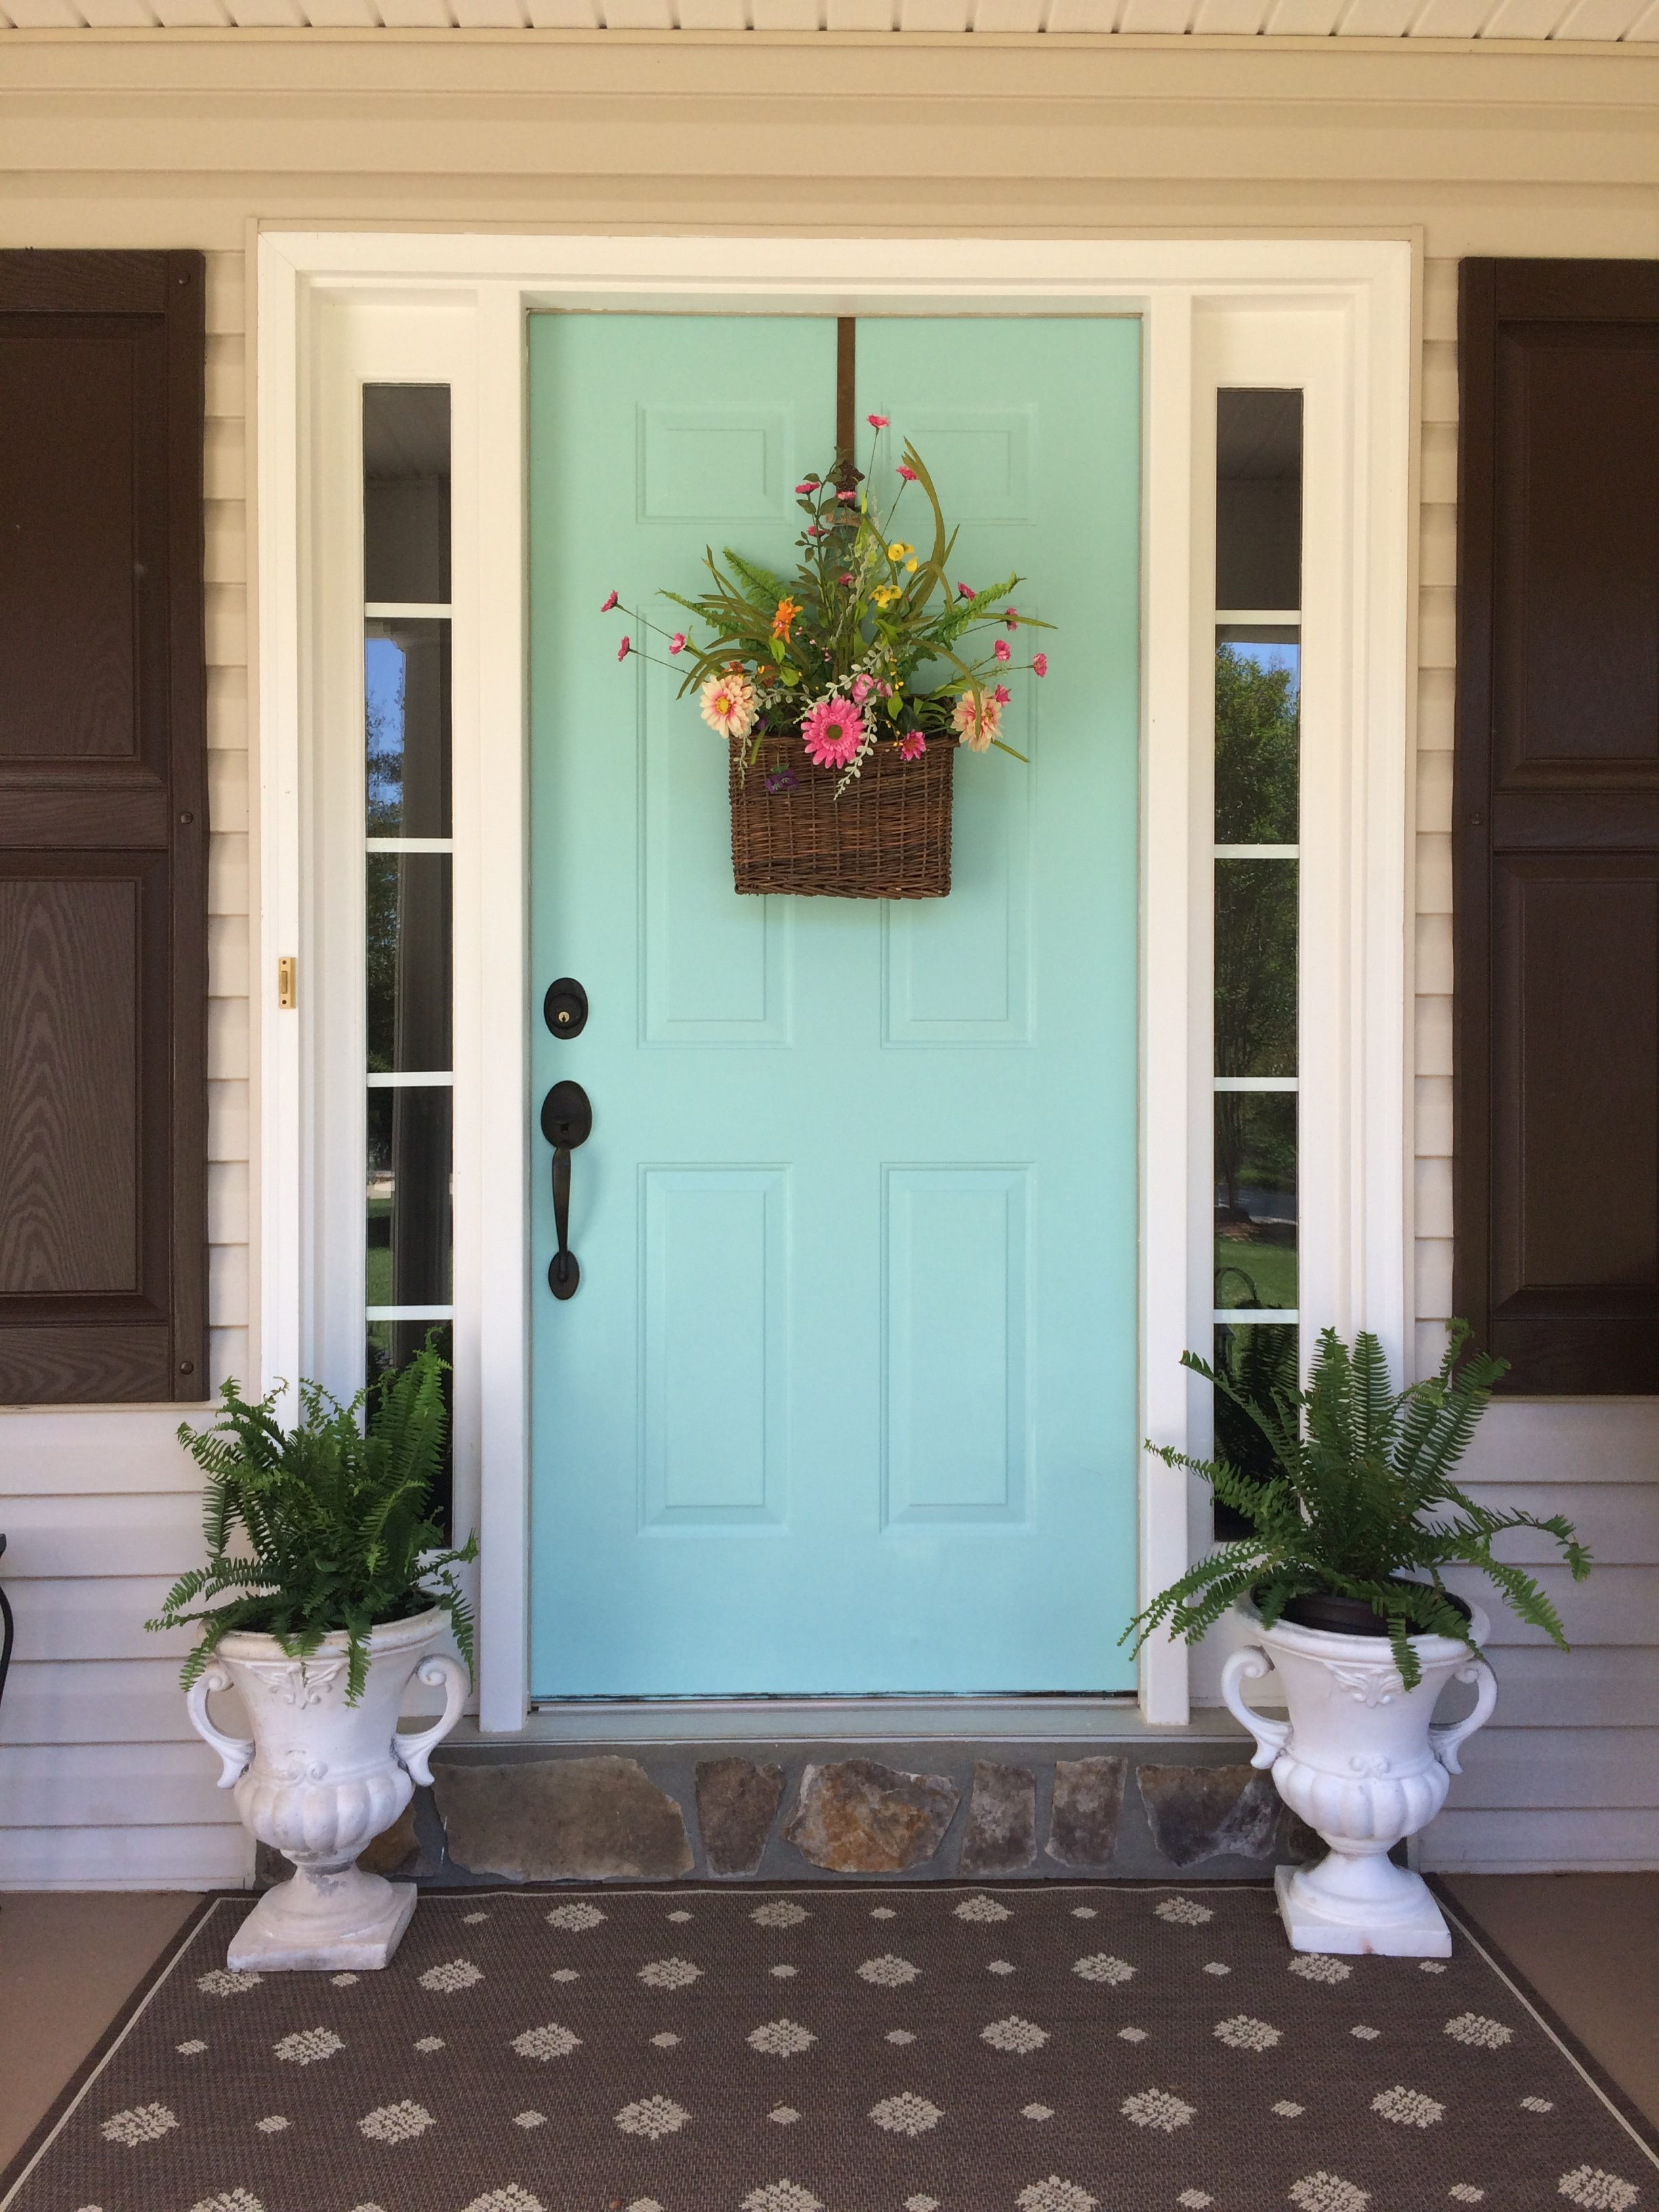 Pin by Mary Holsomback on Wreaths/Door decor (With images